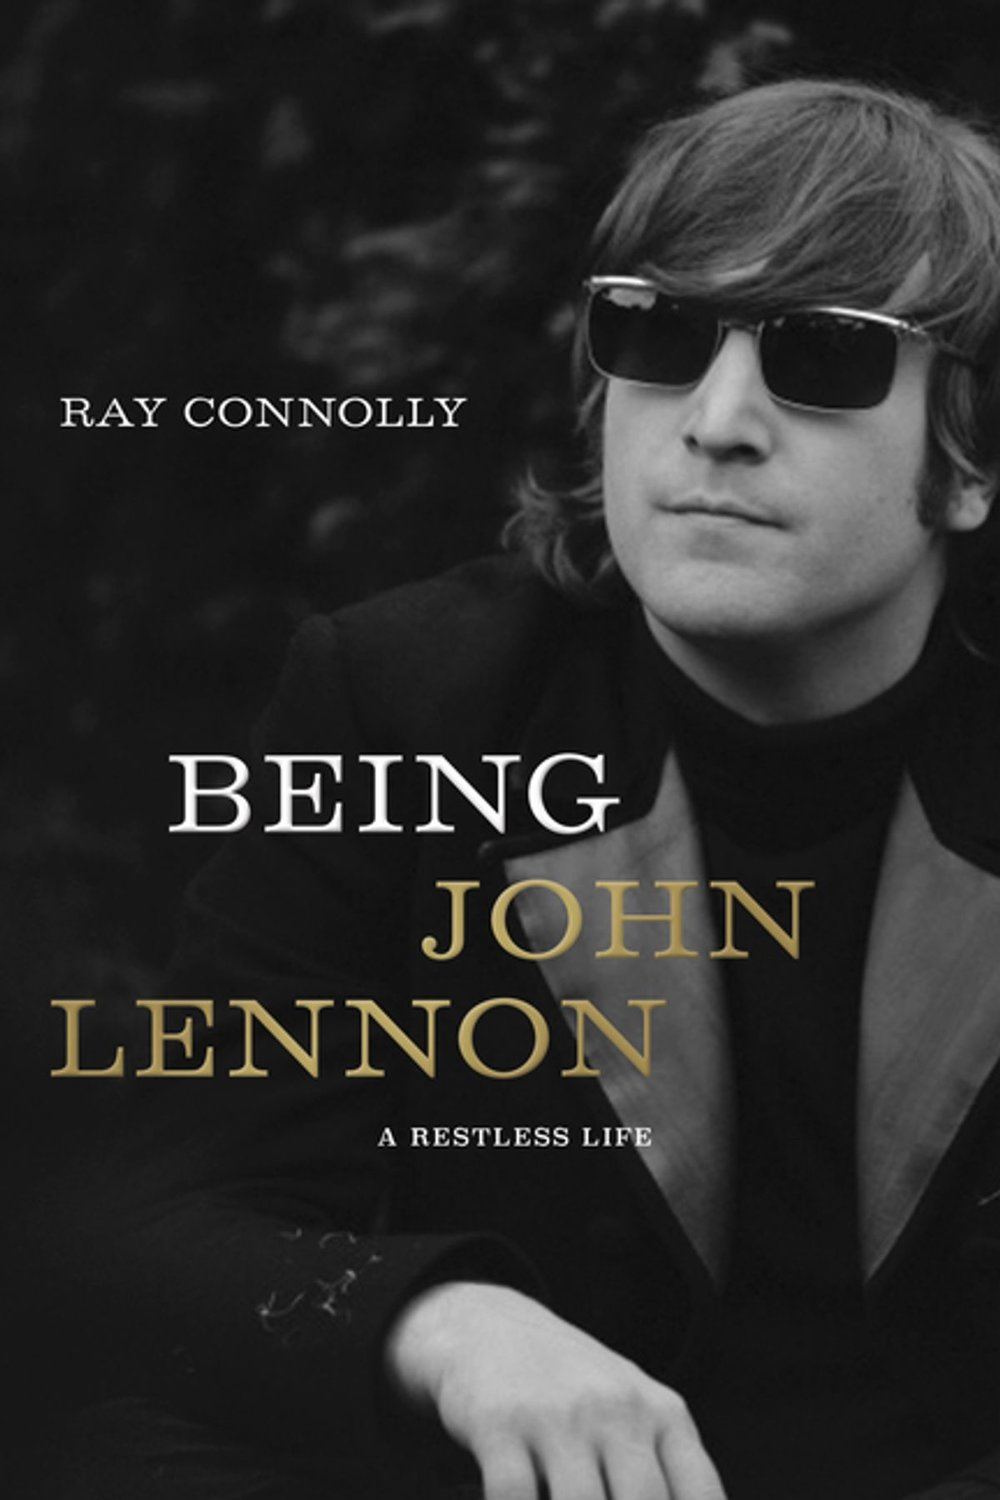 being john lennon by ray connolly.jpg